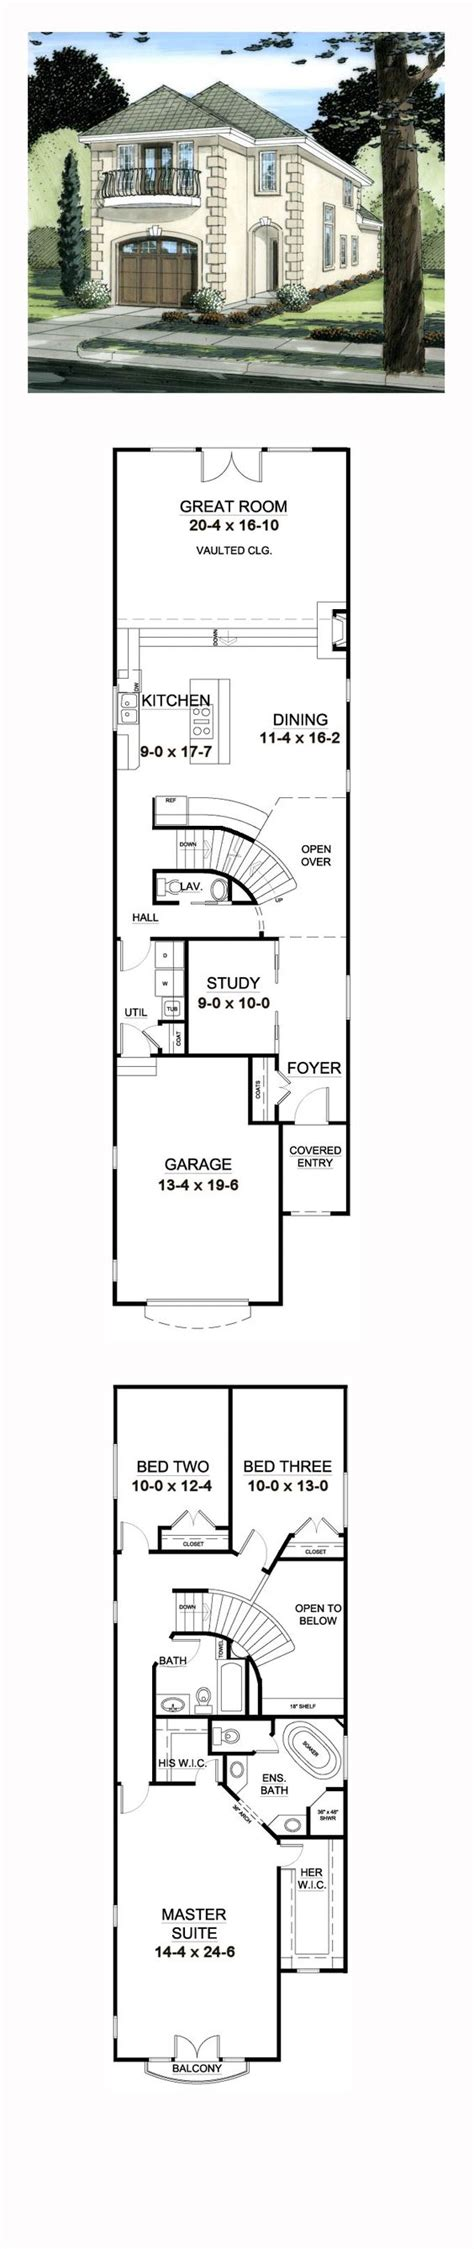 narrow lot 2 story house plans florida house plan 99997 house chang e 3 and narrow lot